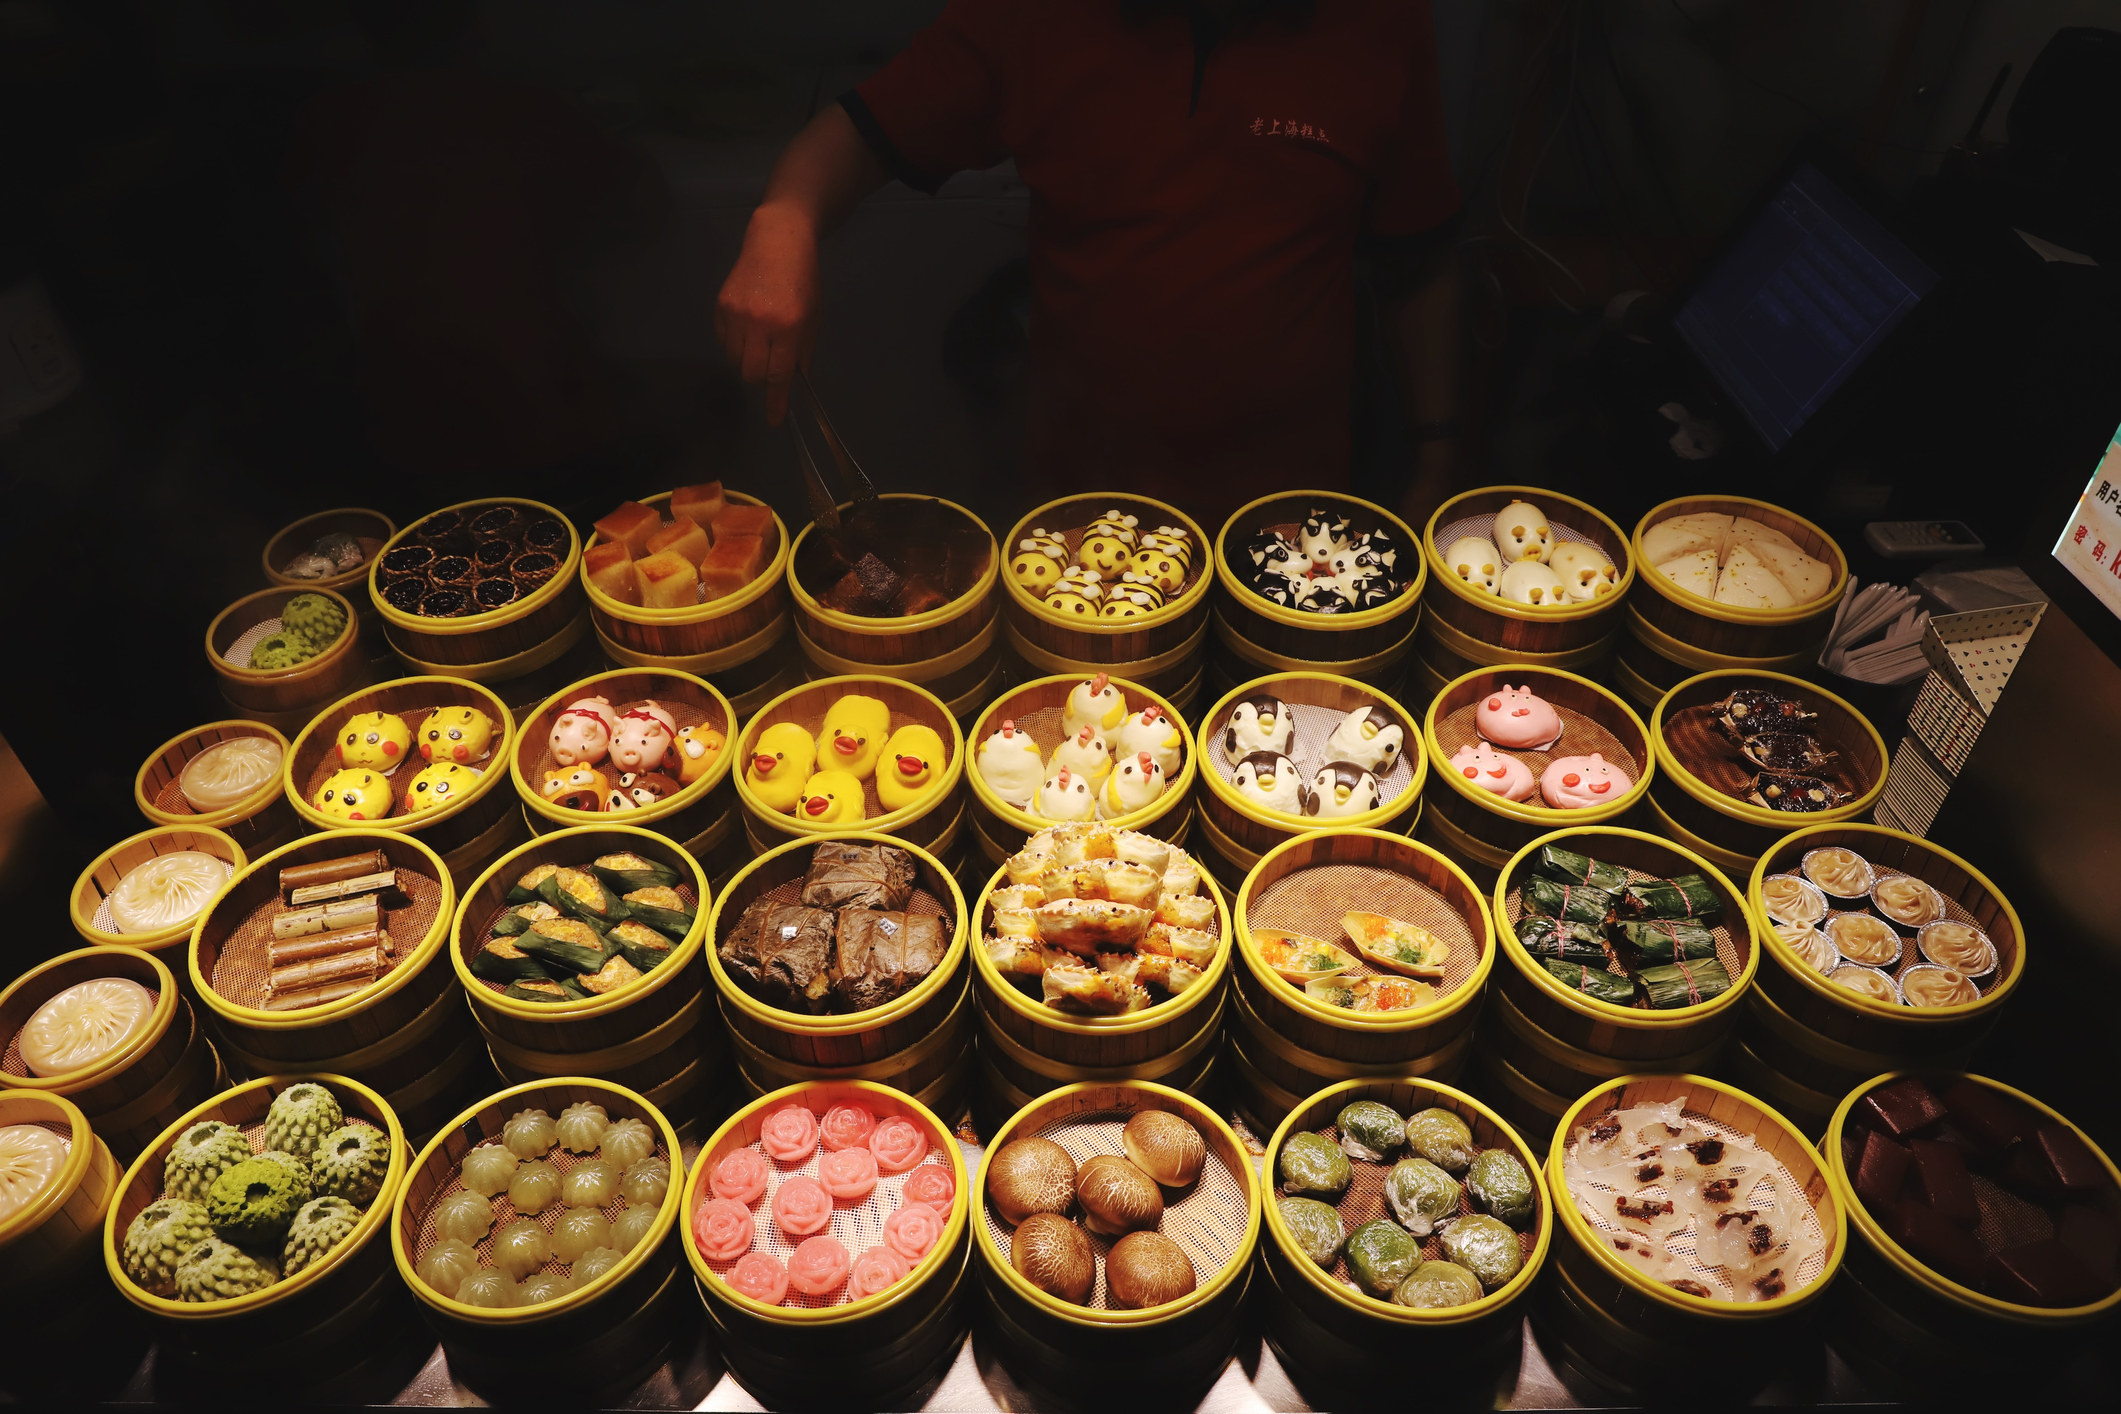 Lots of colorful dim sum at a street market.